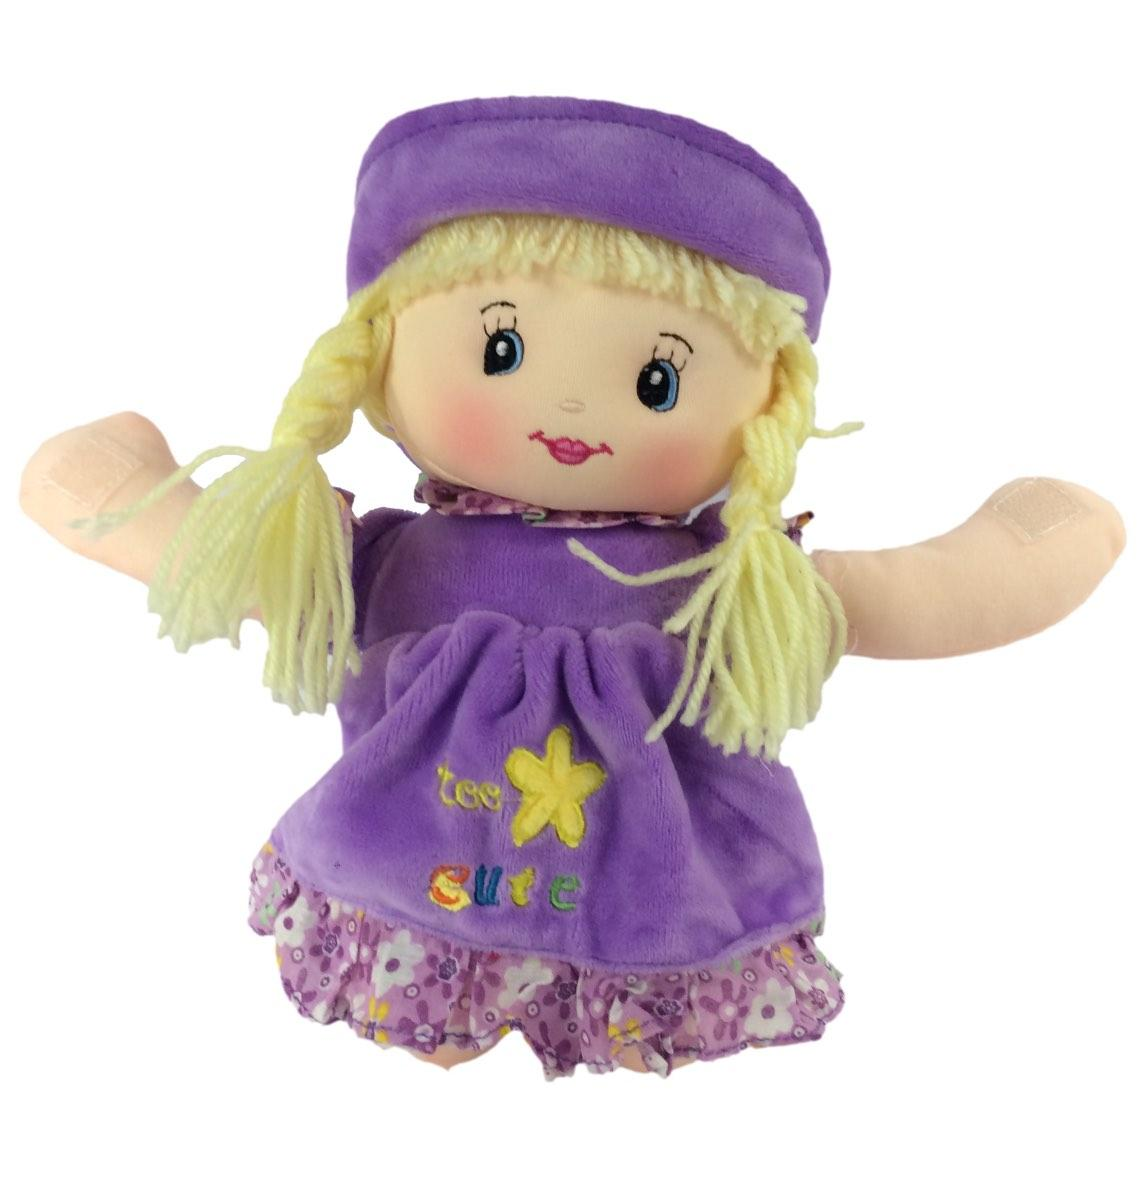 Keira Prayer Doll Lavender Dress Recites Angel De La Guardia - Spanish